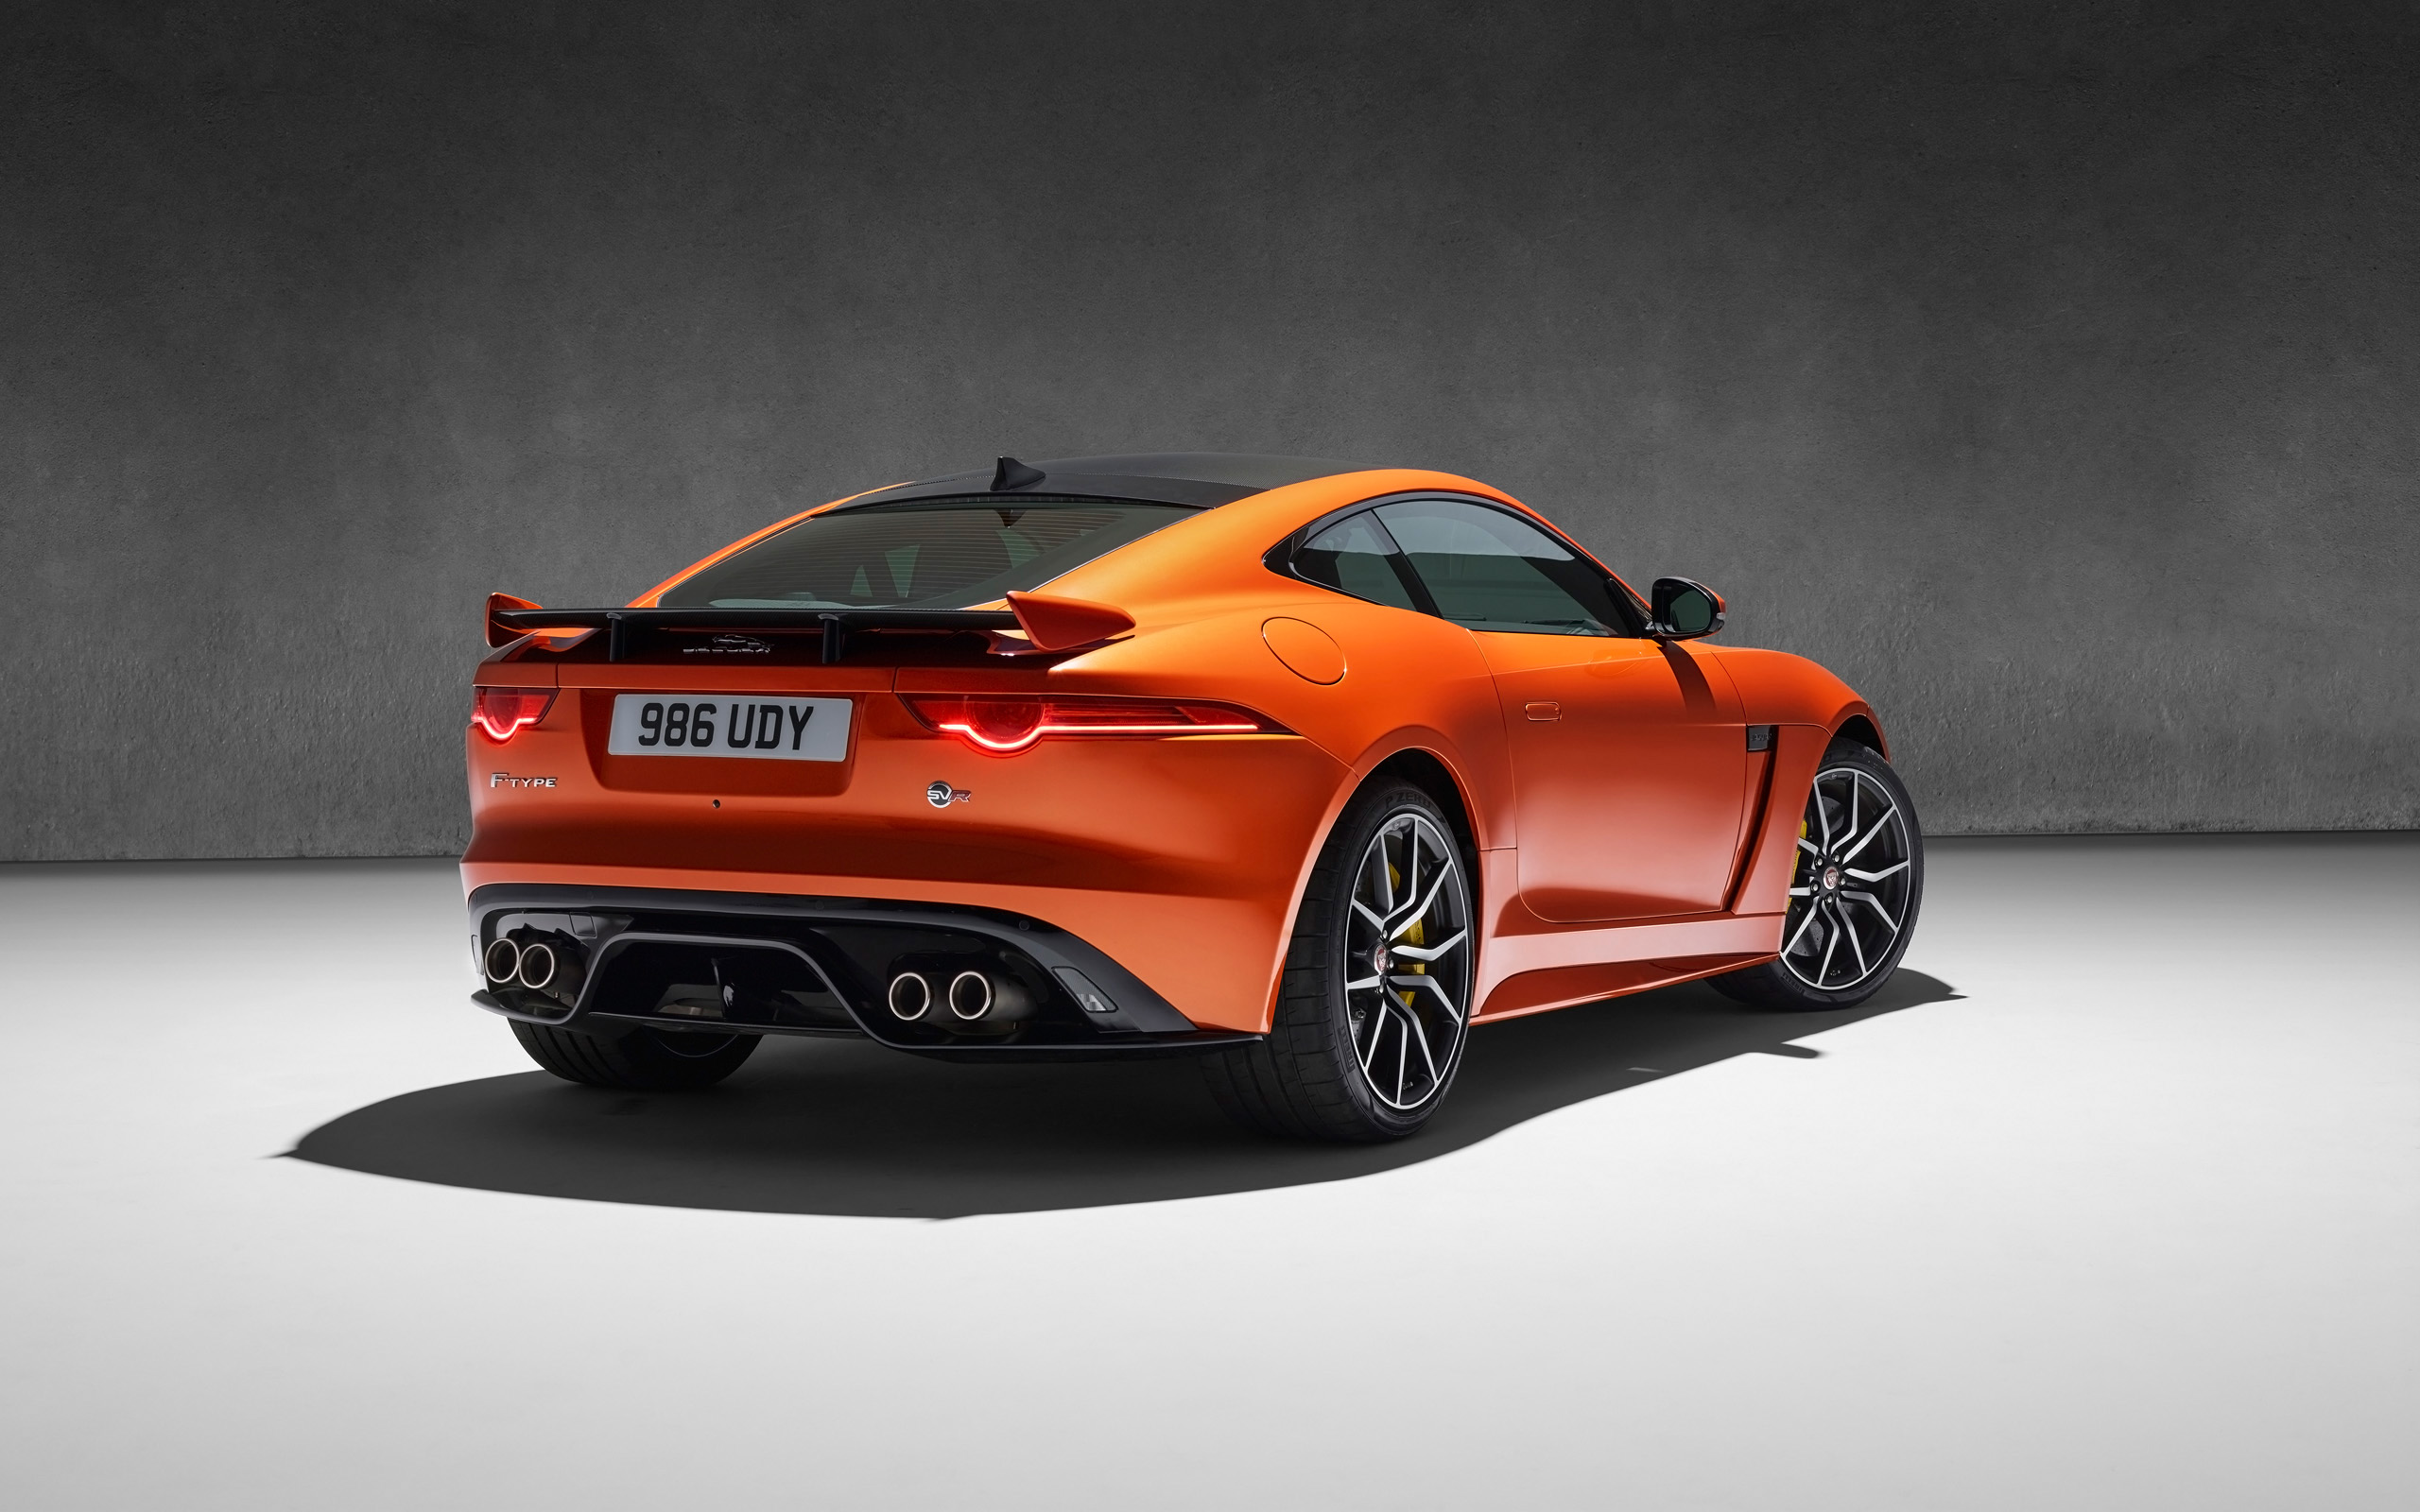 2017 Jaguar F Type Svr Coupe Rear Wallpaper Hd Car Wallpapers Id